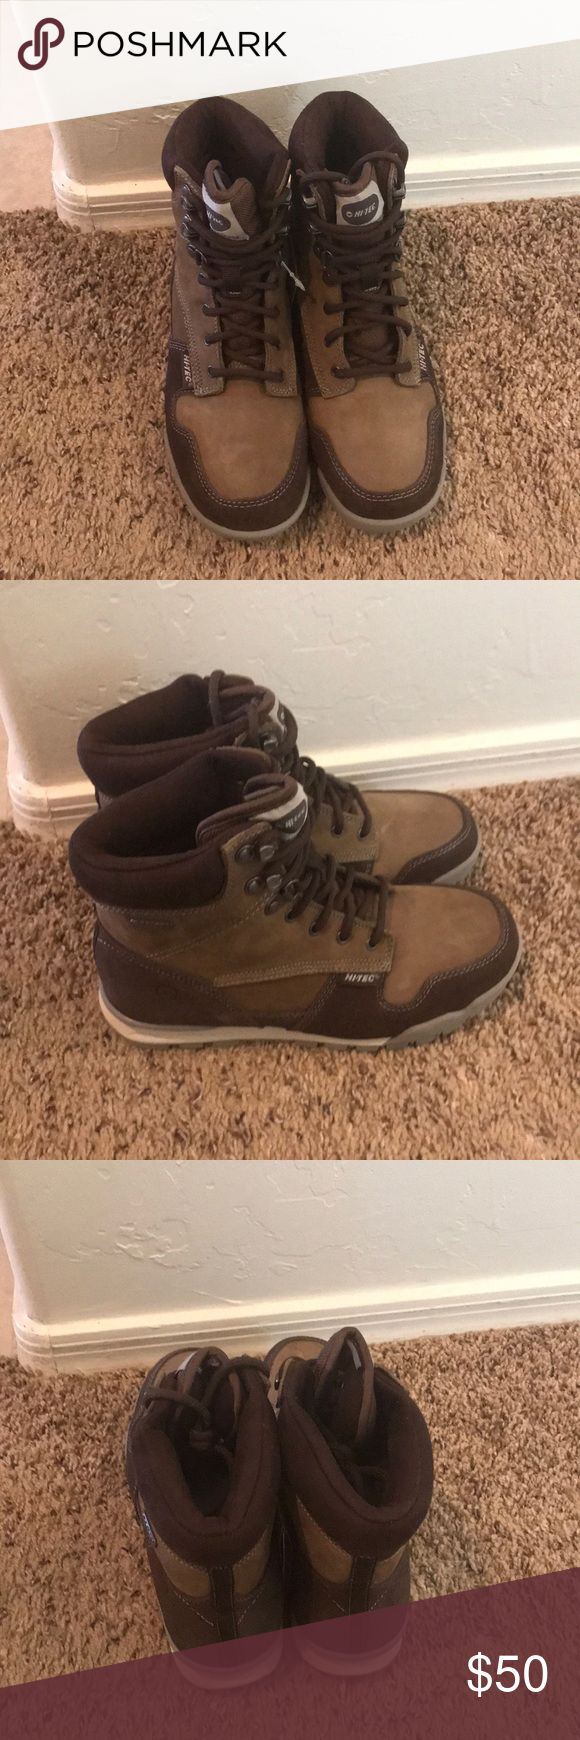 Hiking boots Brand new never been worn hiking boots. In perfect condition. Hi-Tec Shoes Lace Up Boots